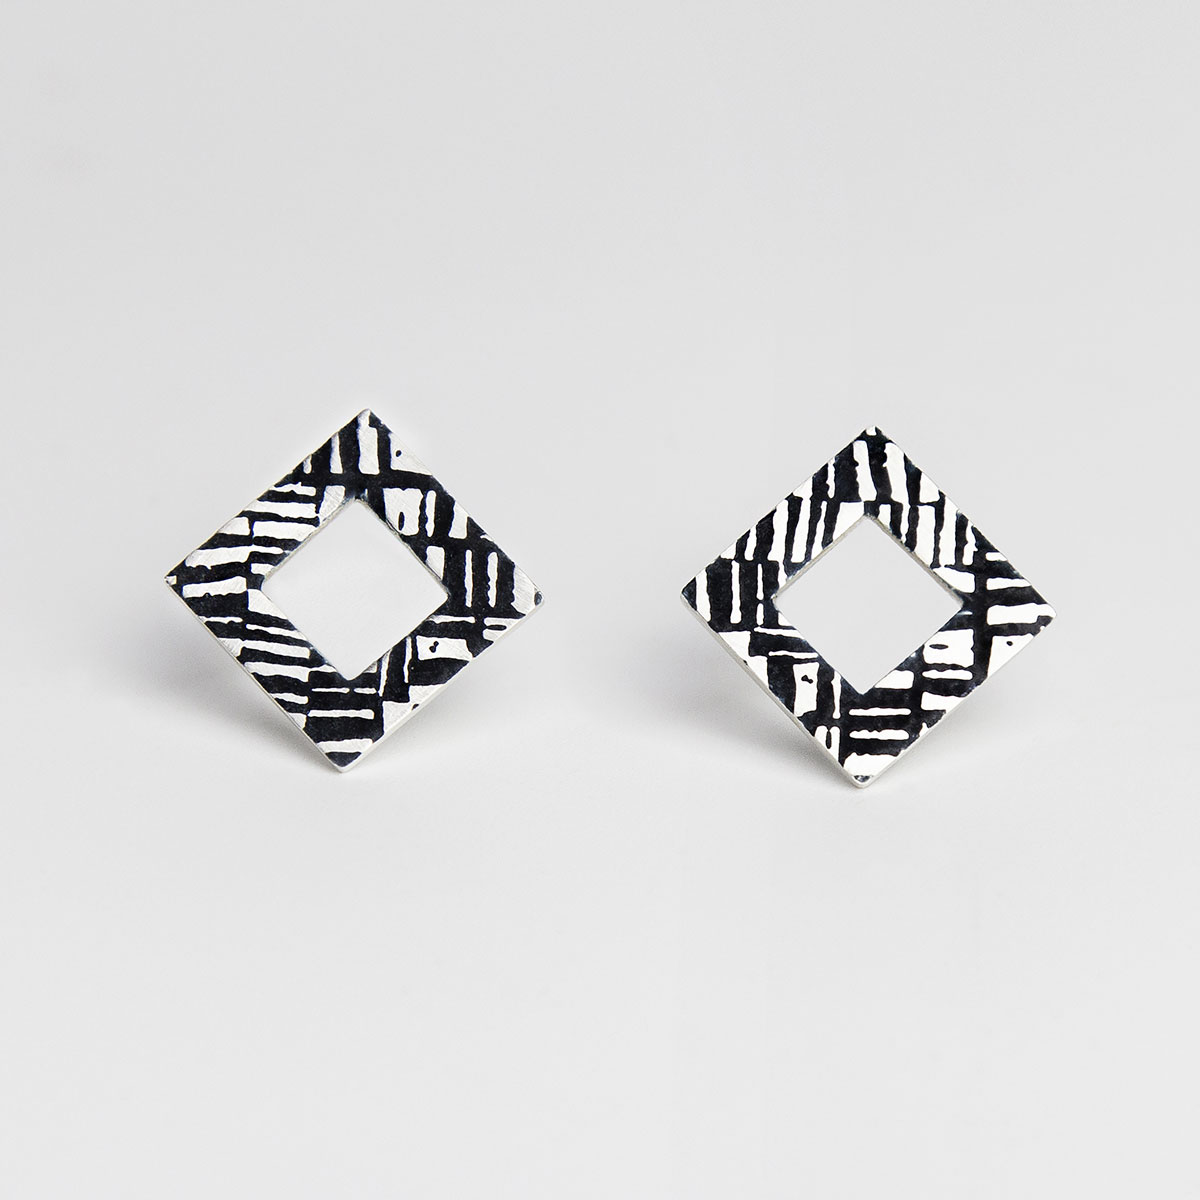 'Weave' Silver and Black Earrings, Large